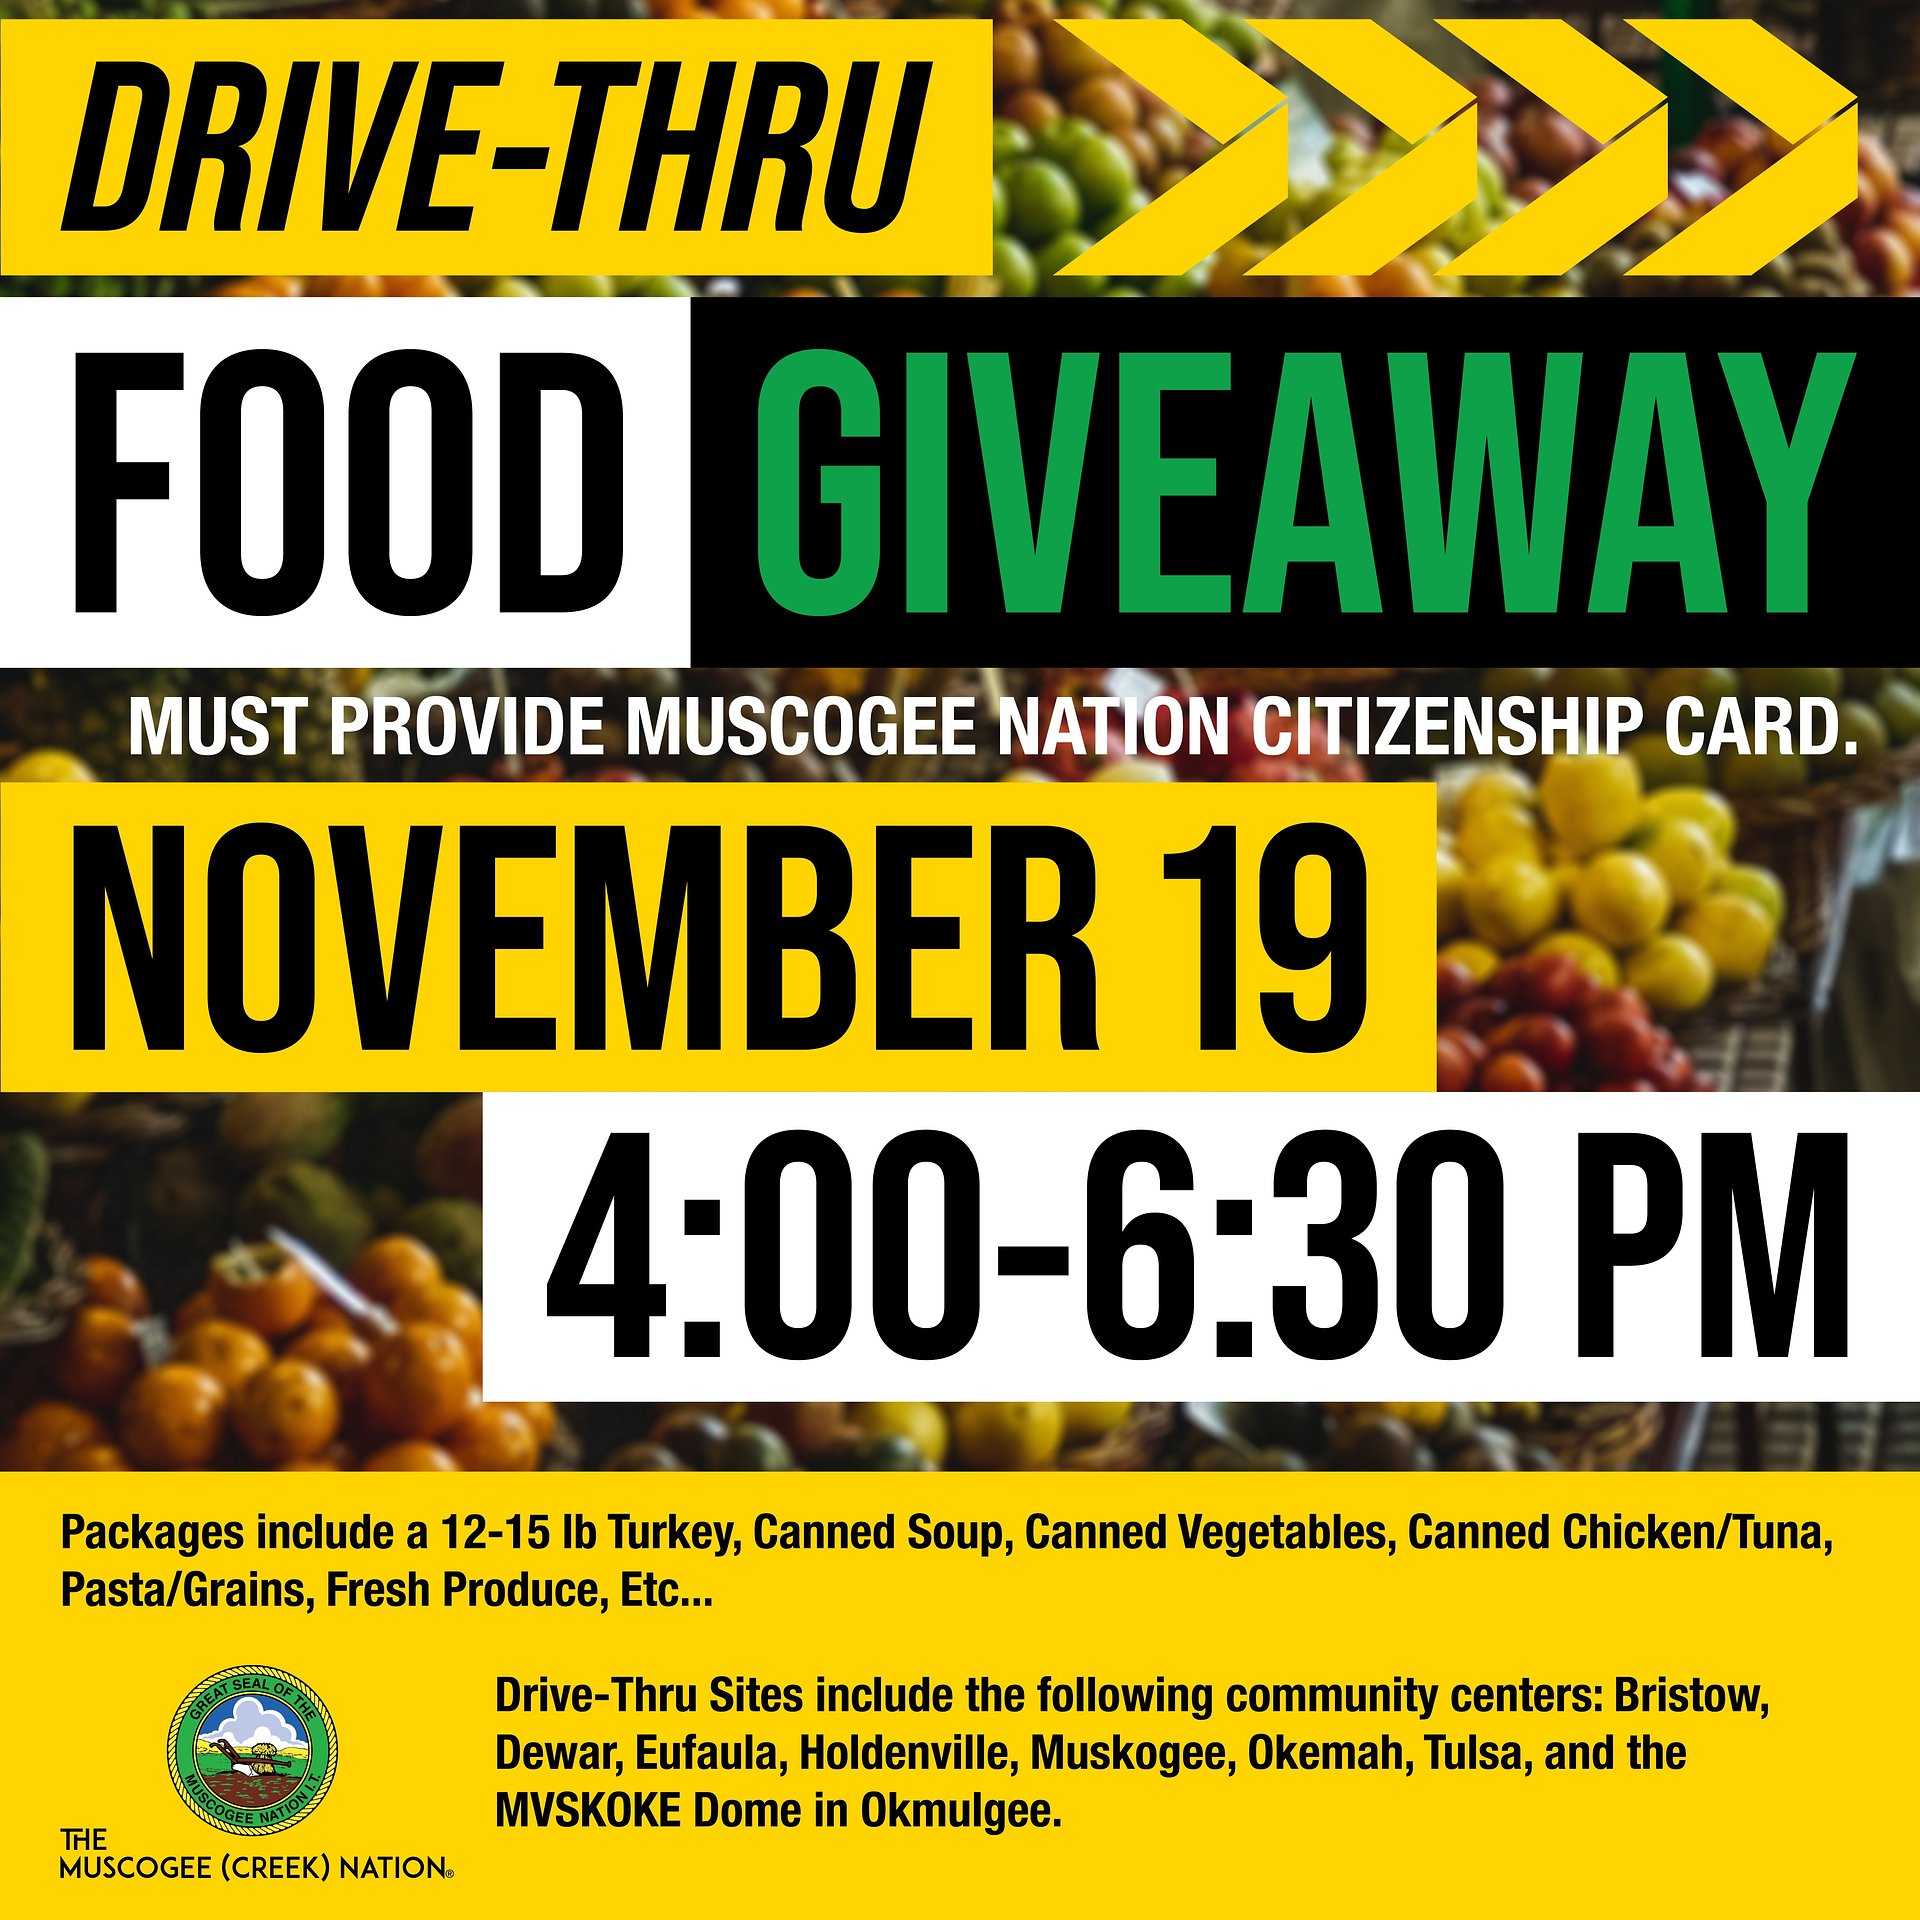 Muscogee (Creek) Nation to aid families during Thanksgiving Holiday